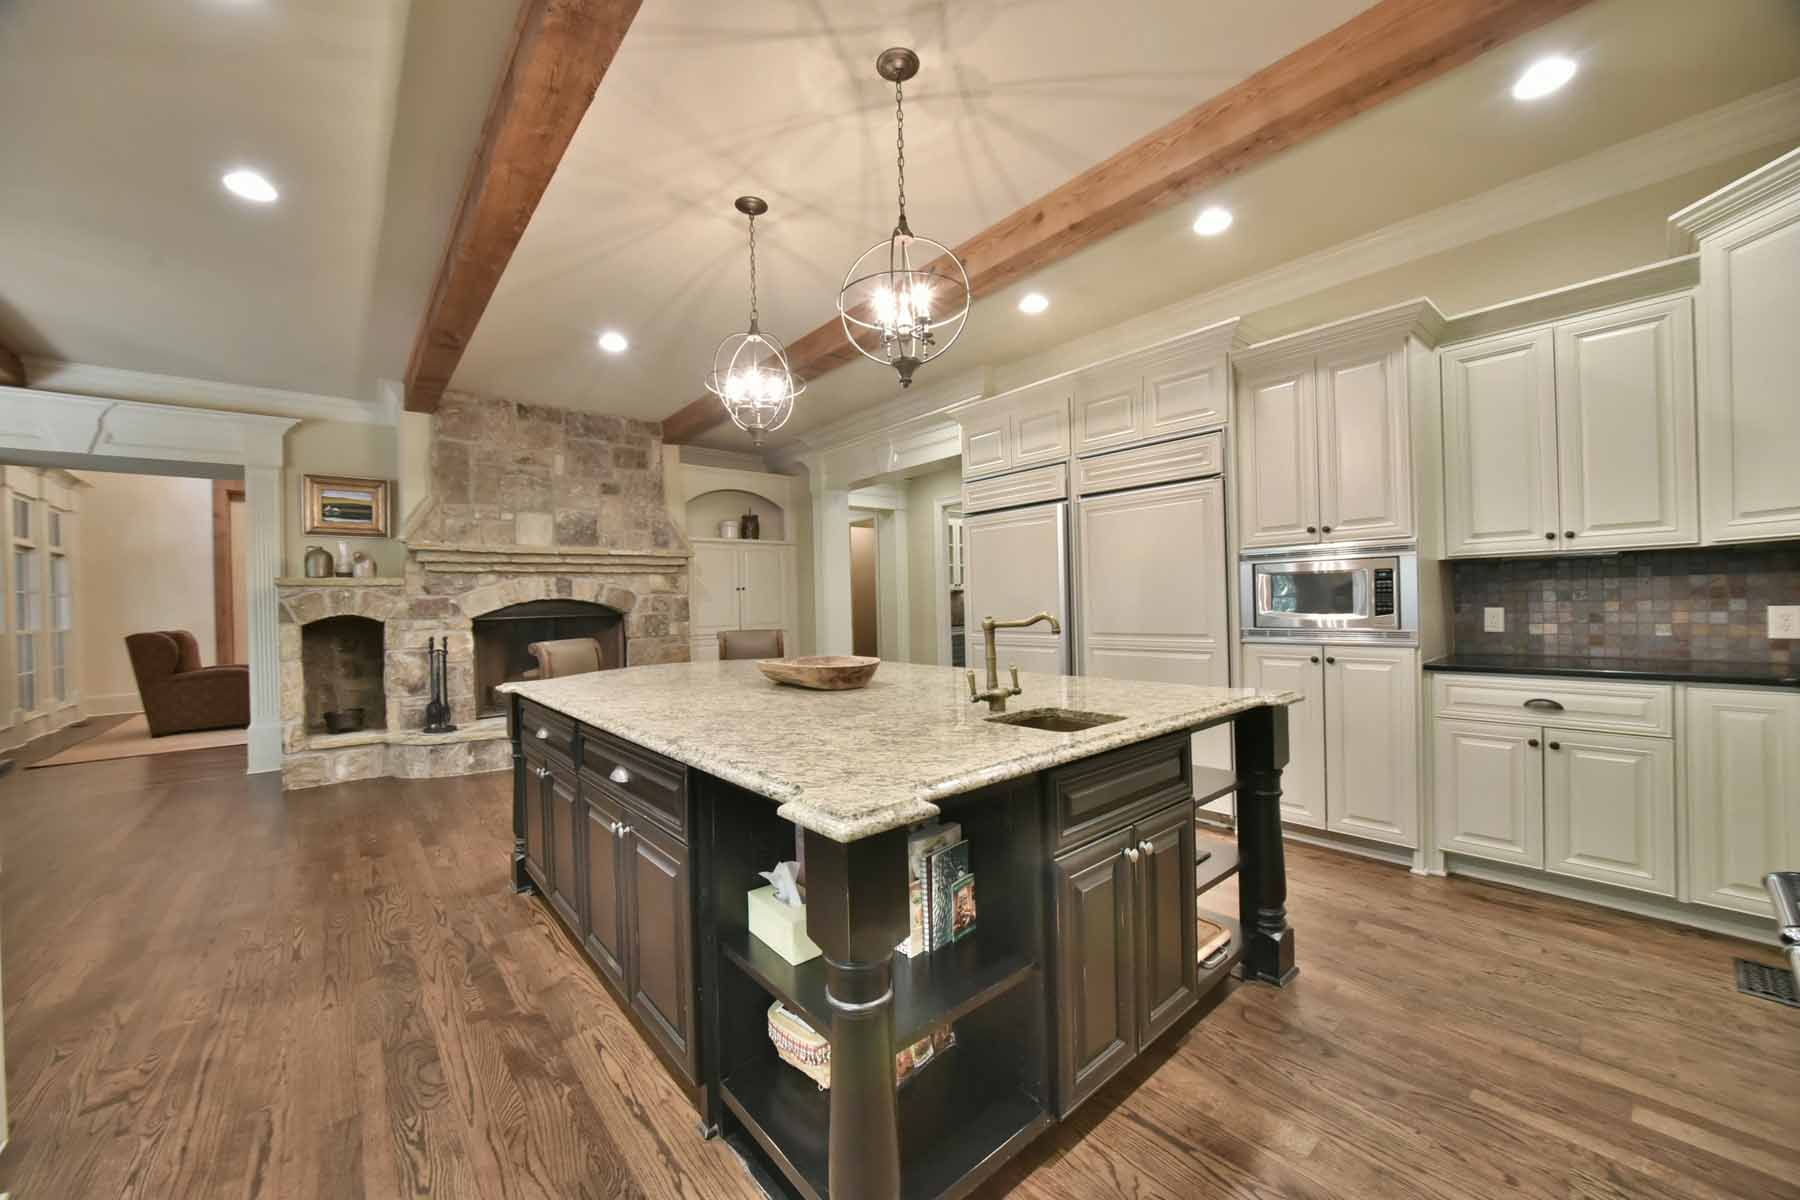 Single Family Homes のために 売買 アット Rustic Elegance at The River Club 902 Little Darby Lane, Suwanee, ジョージア 30024 アメリカ